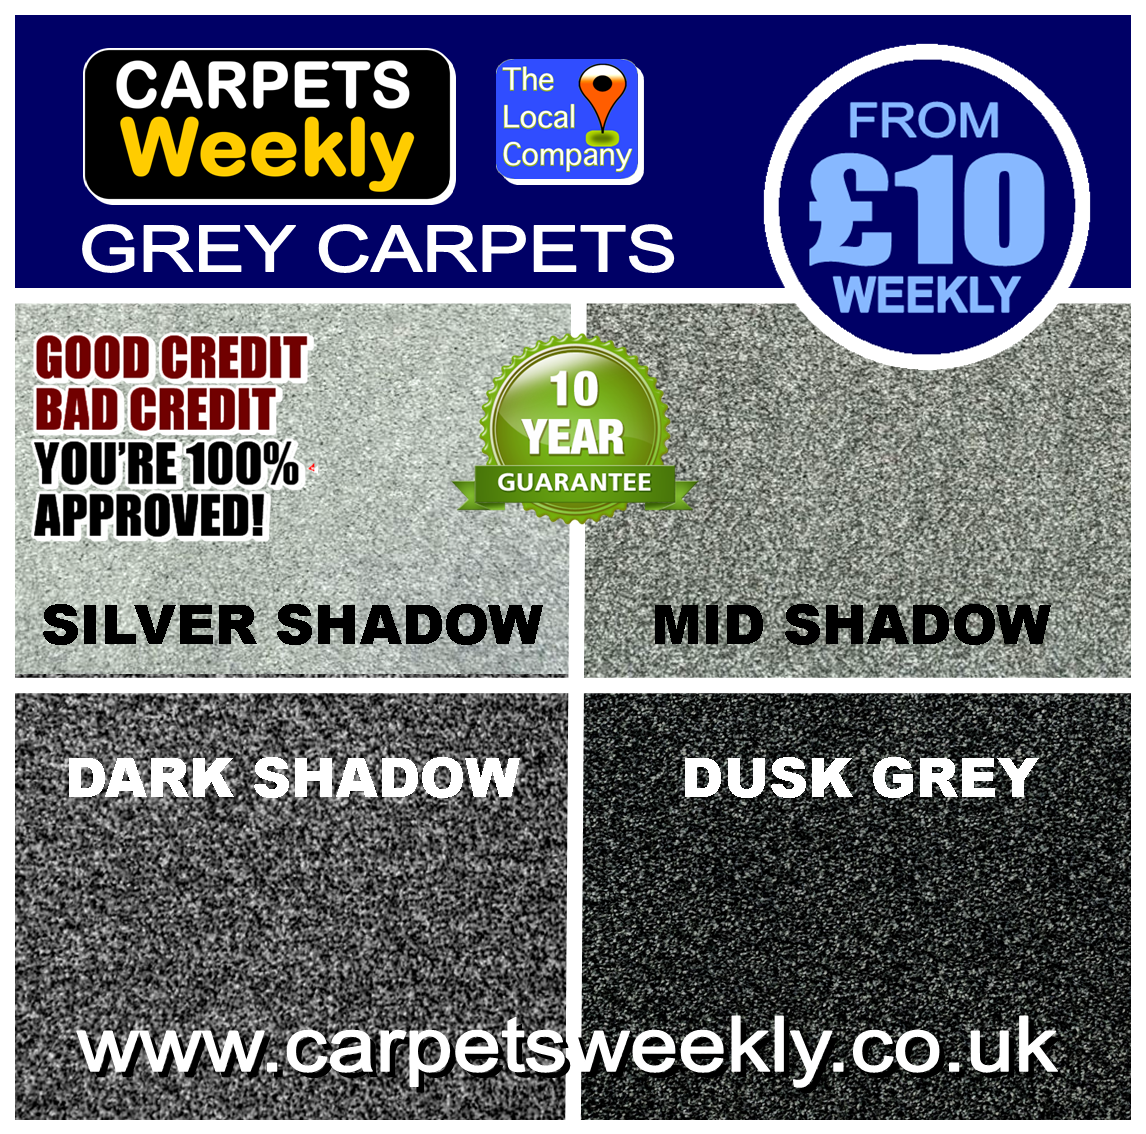 Quality Grey Carpets from Carpets Weekly in Middlesbrough